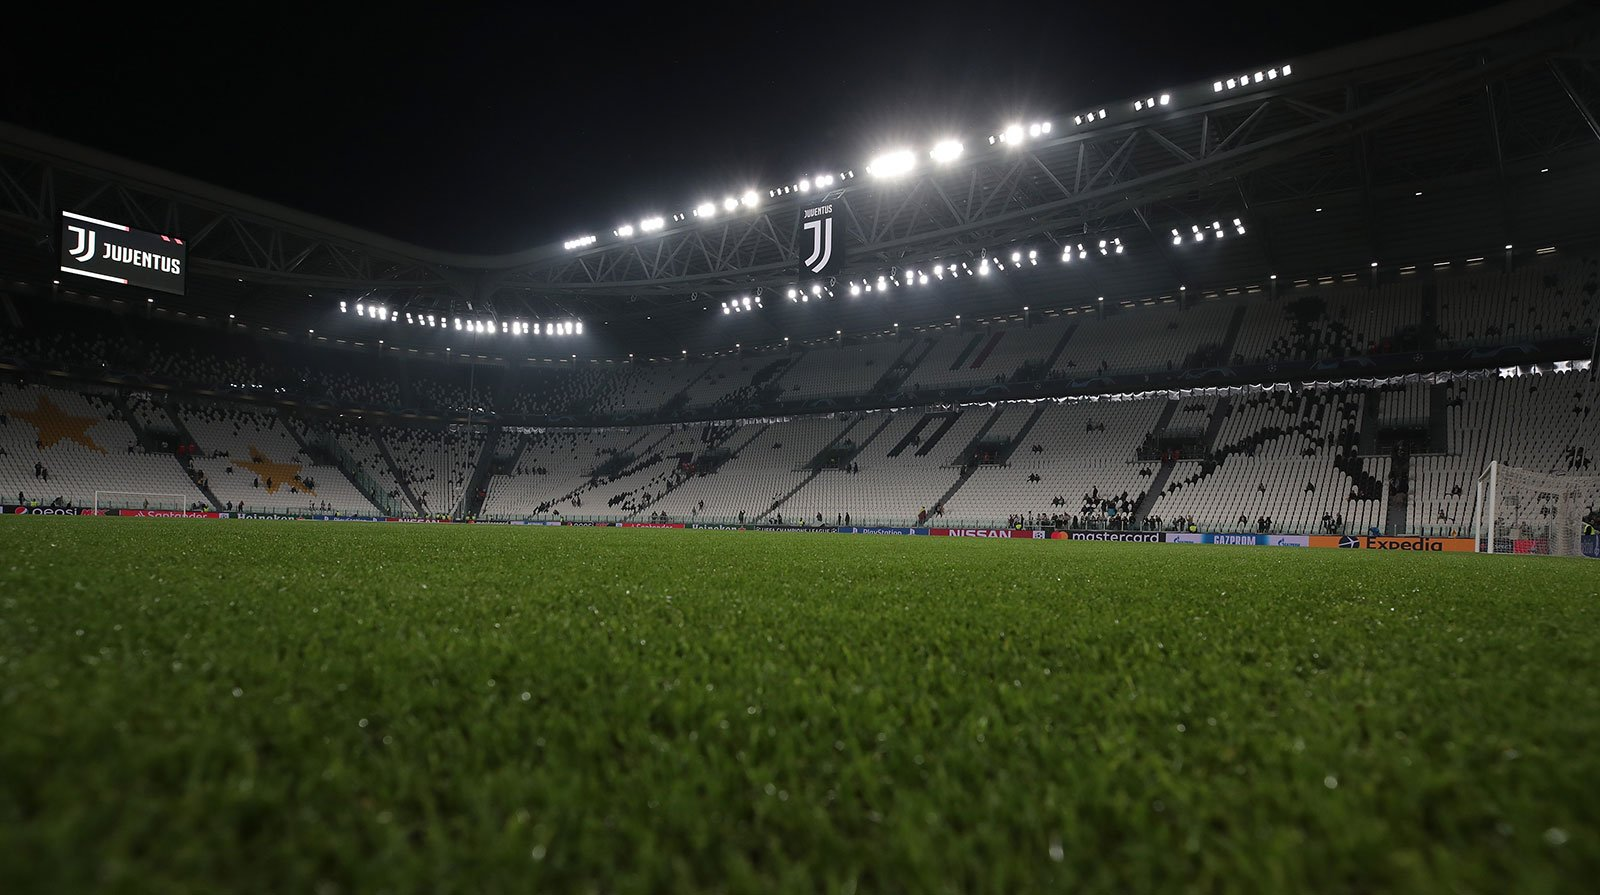 official juventus milan postponed to a later date due to the coronavirus rossoneri blog ac milan news official juventus milan postponed to a later date due to the coronavirus rossoneri blog ac milan news